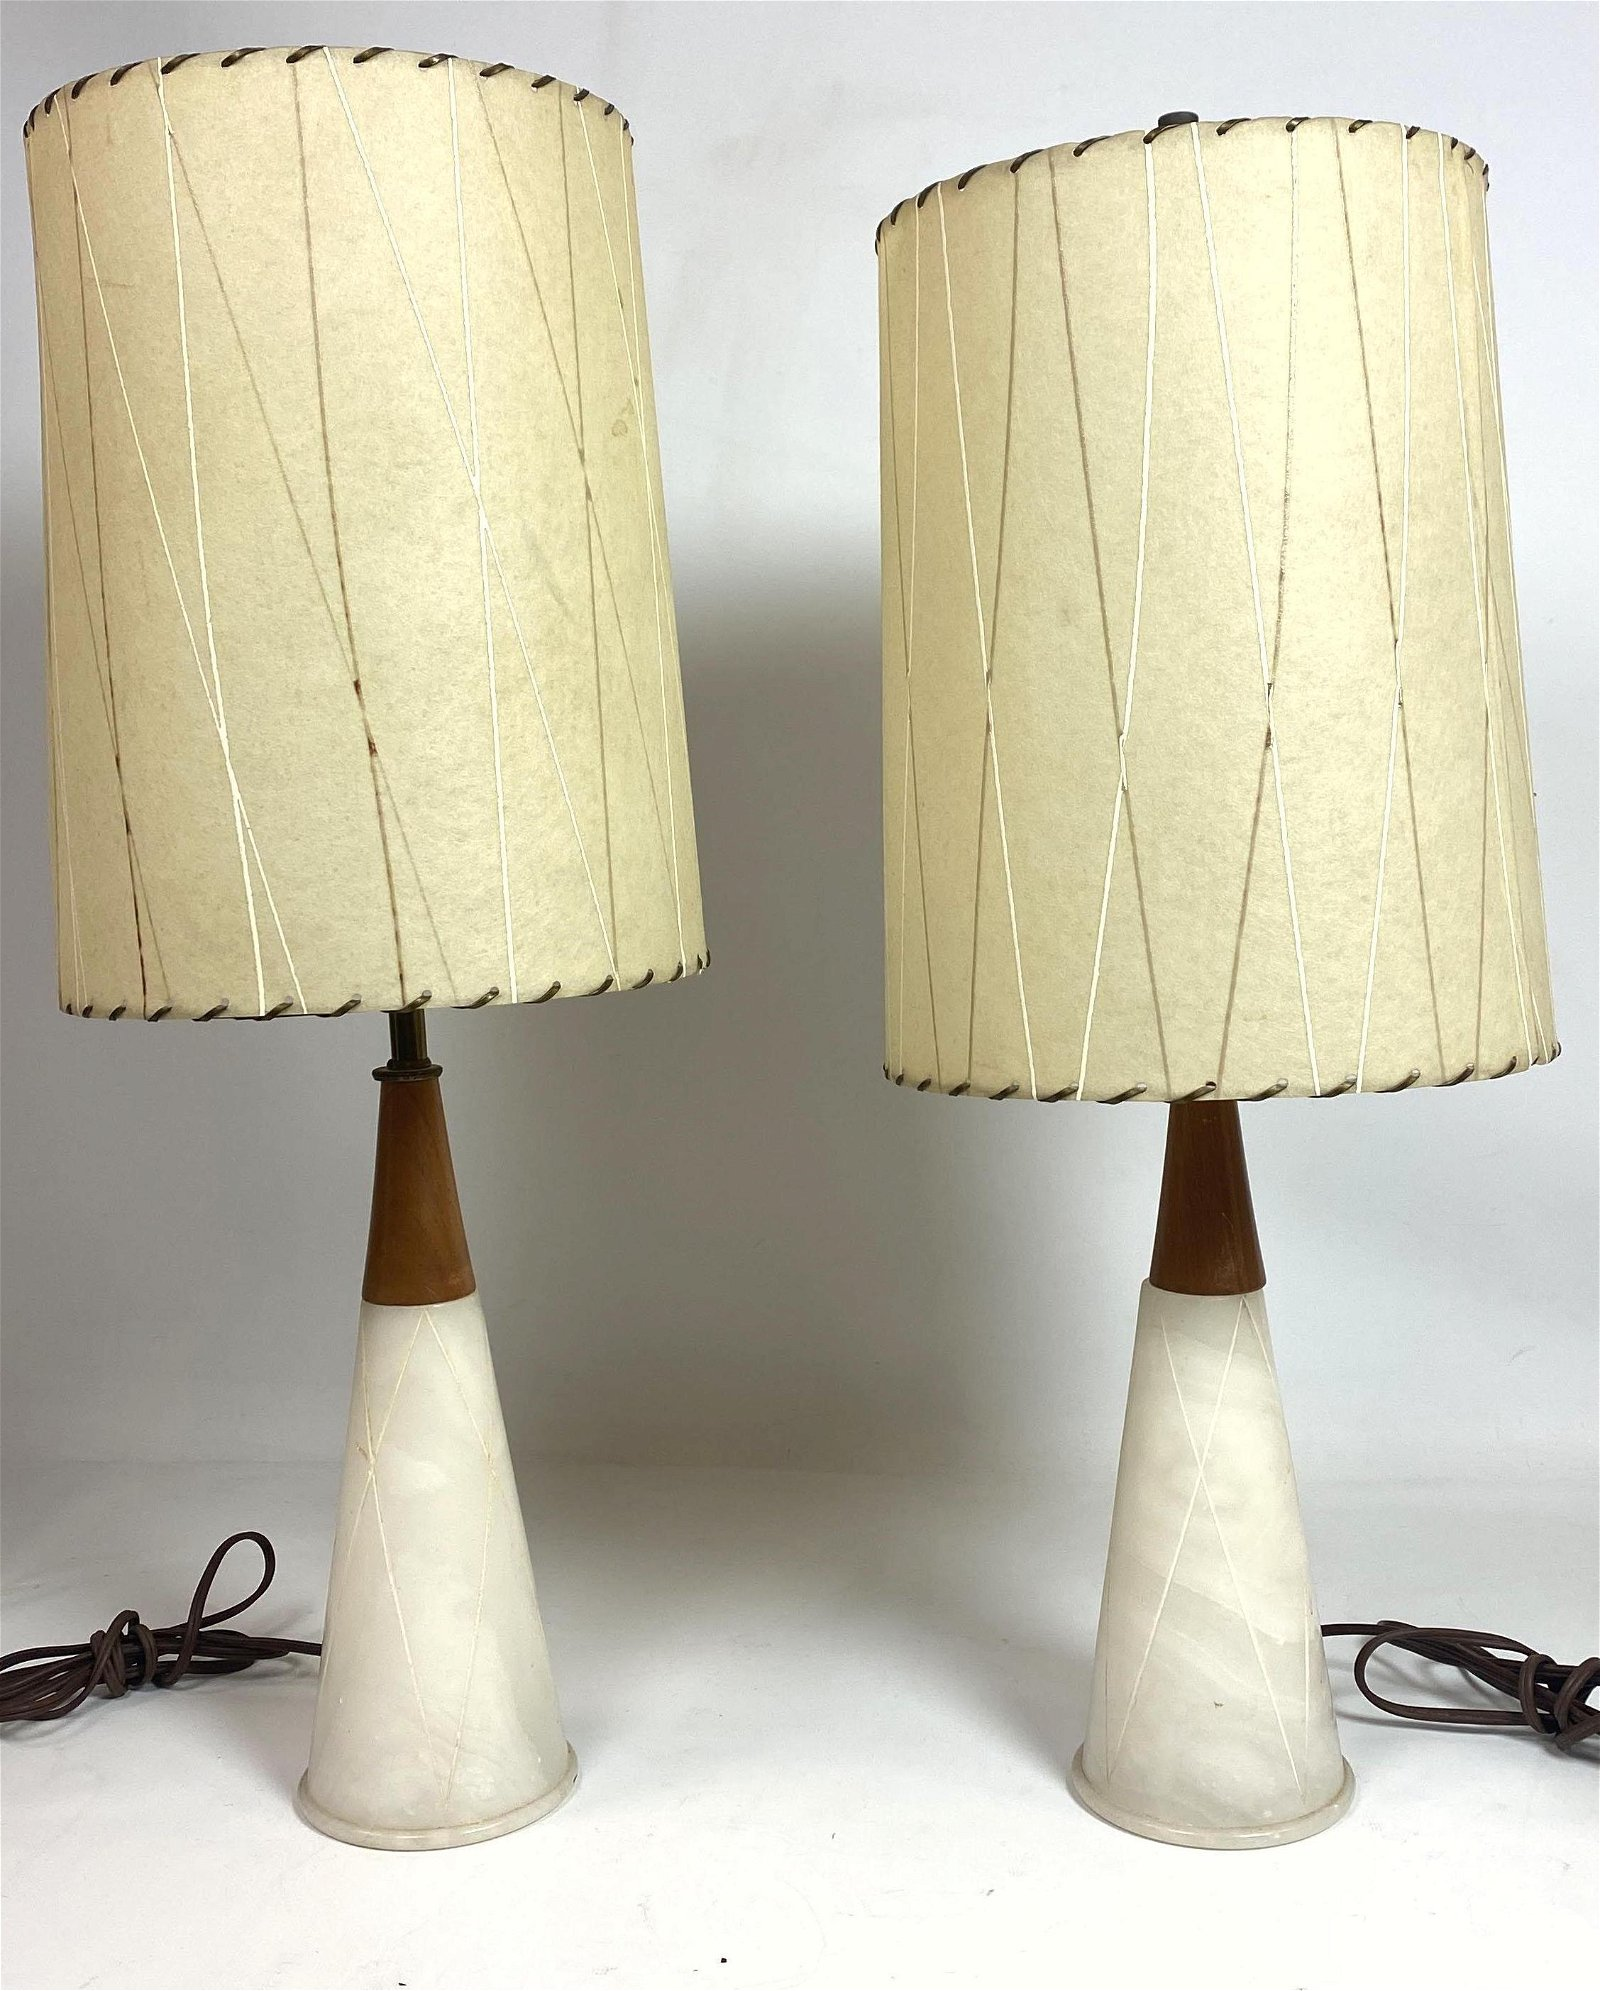 Image of: For Auction Pair Mid Century Modern Table Lamps Marble An Walnut 0215 On Jun 23 2020 Uniques Antiques Inc In Pa